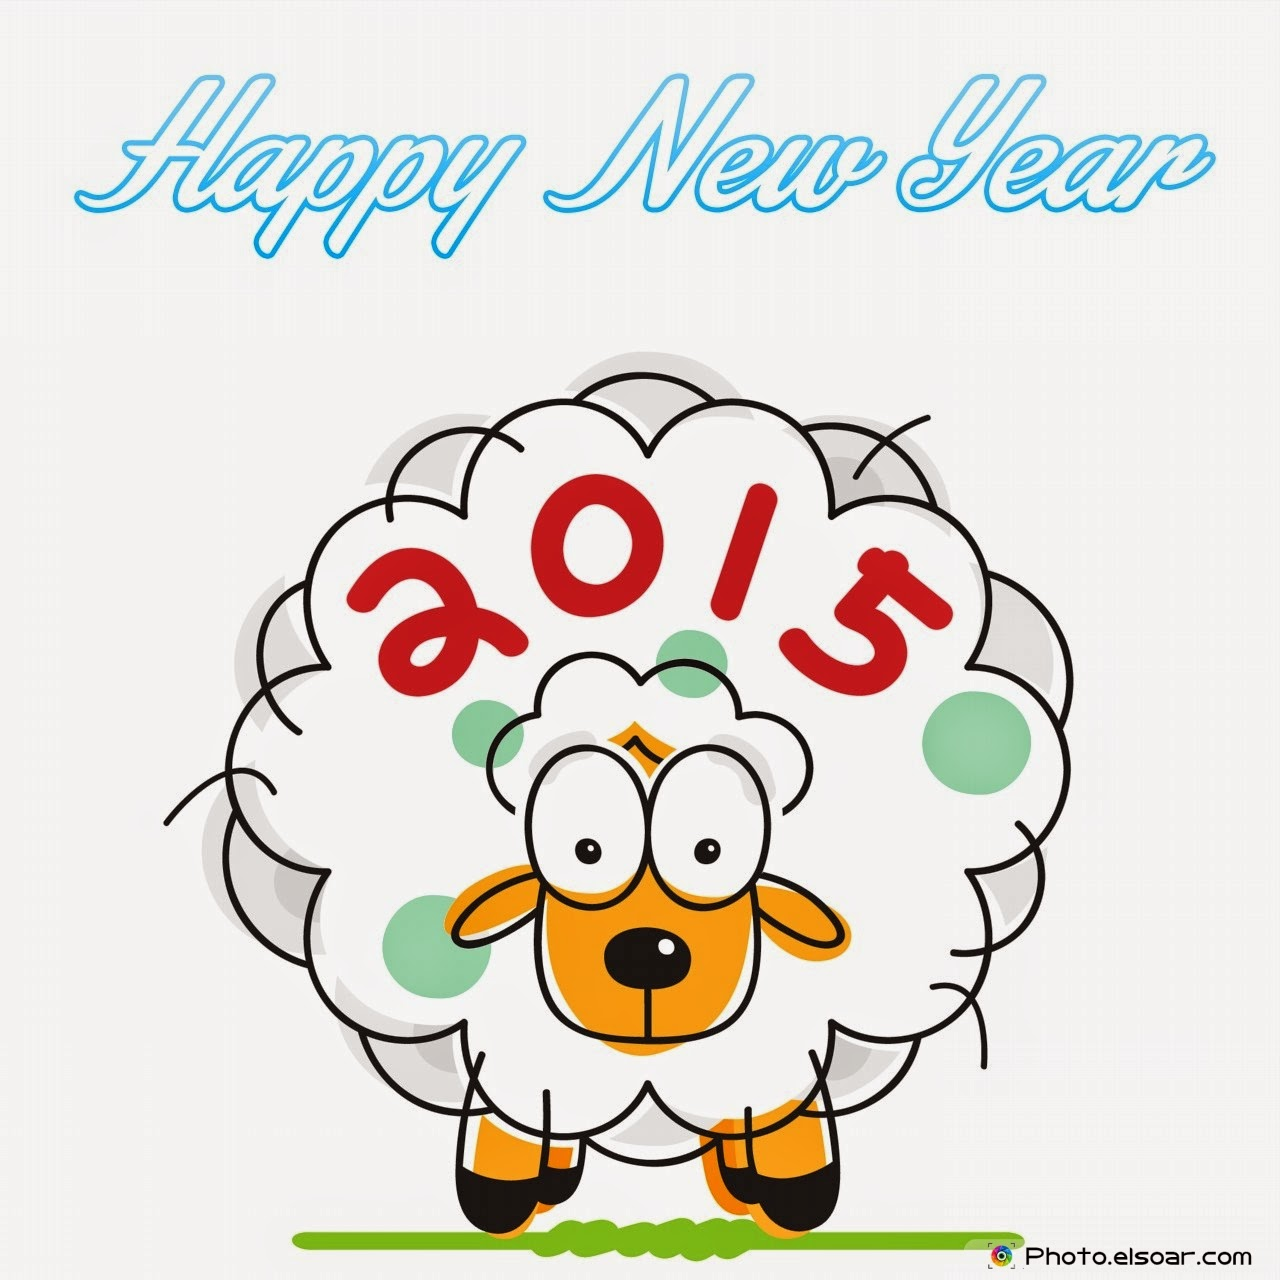 Happy Chinese New Year 2015 Wallpaper Backgrou #13226 ...  Happy Chinese New Year 2015